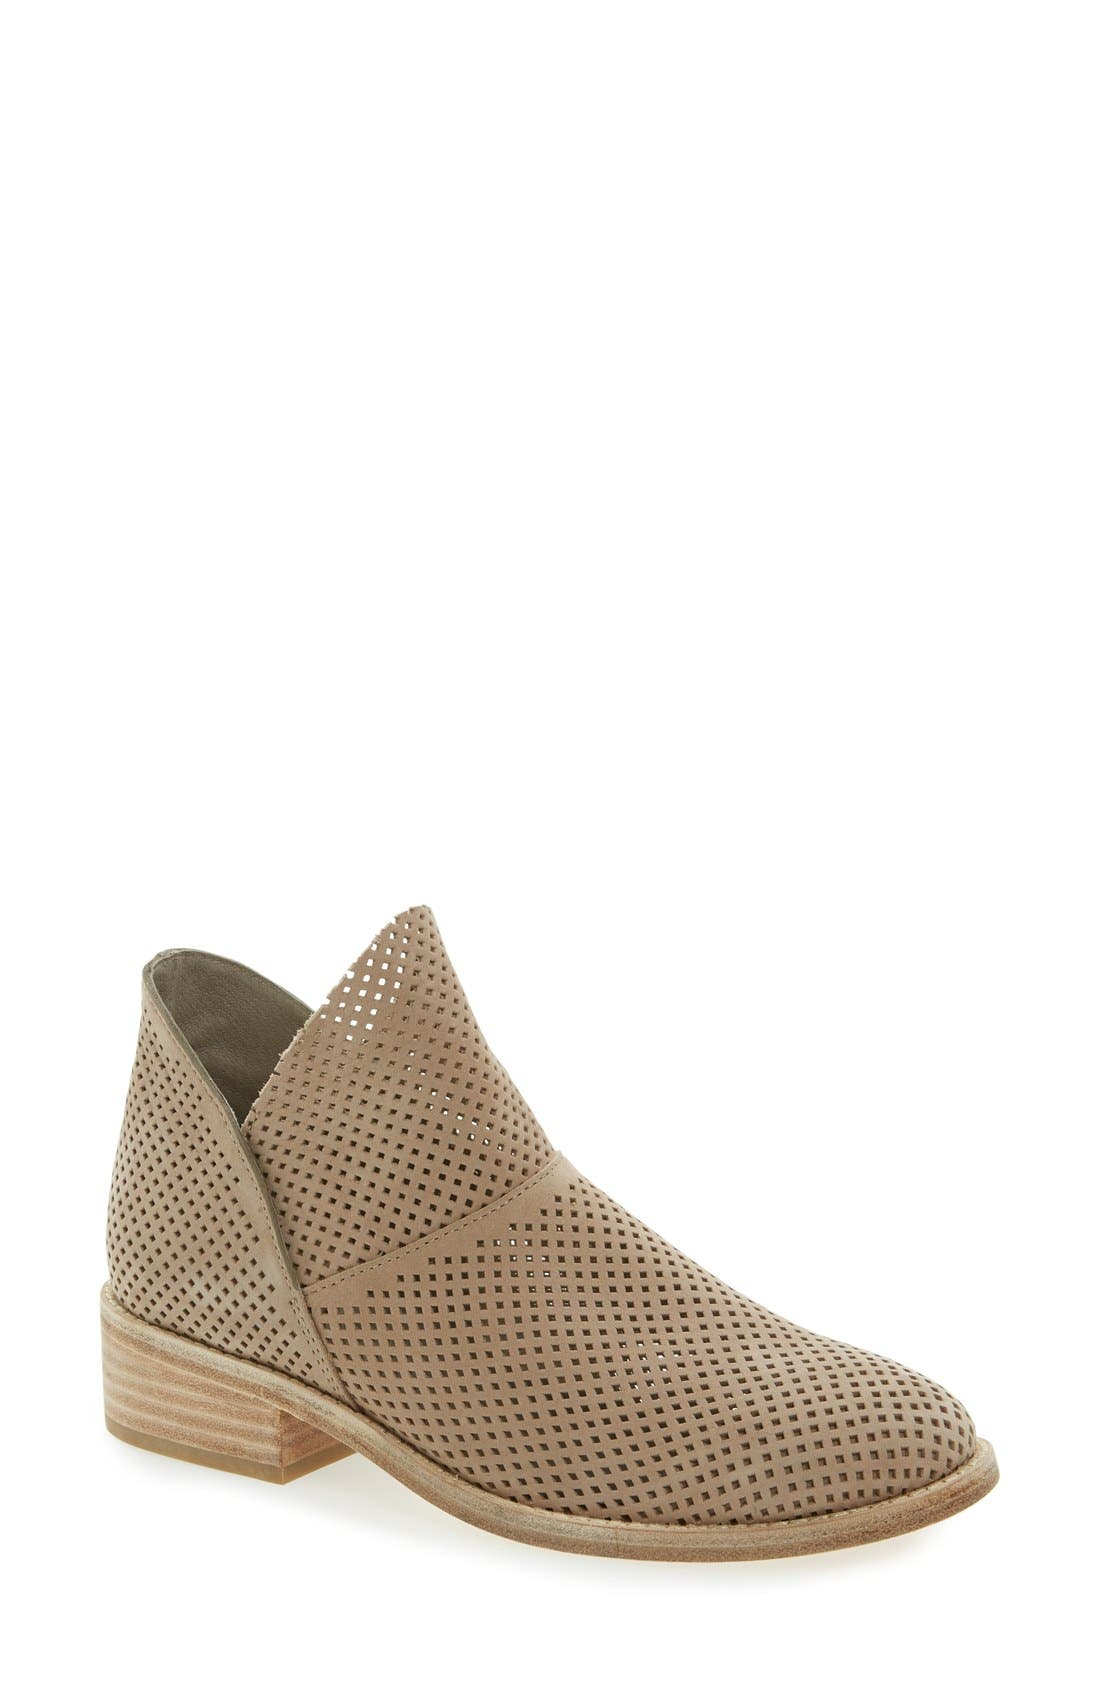 Alternate Image 1 Selected - Eileen Fisher 'Leaf' Bootie (Women)